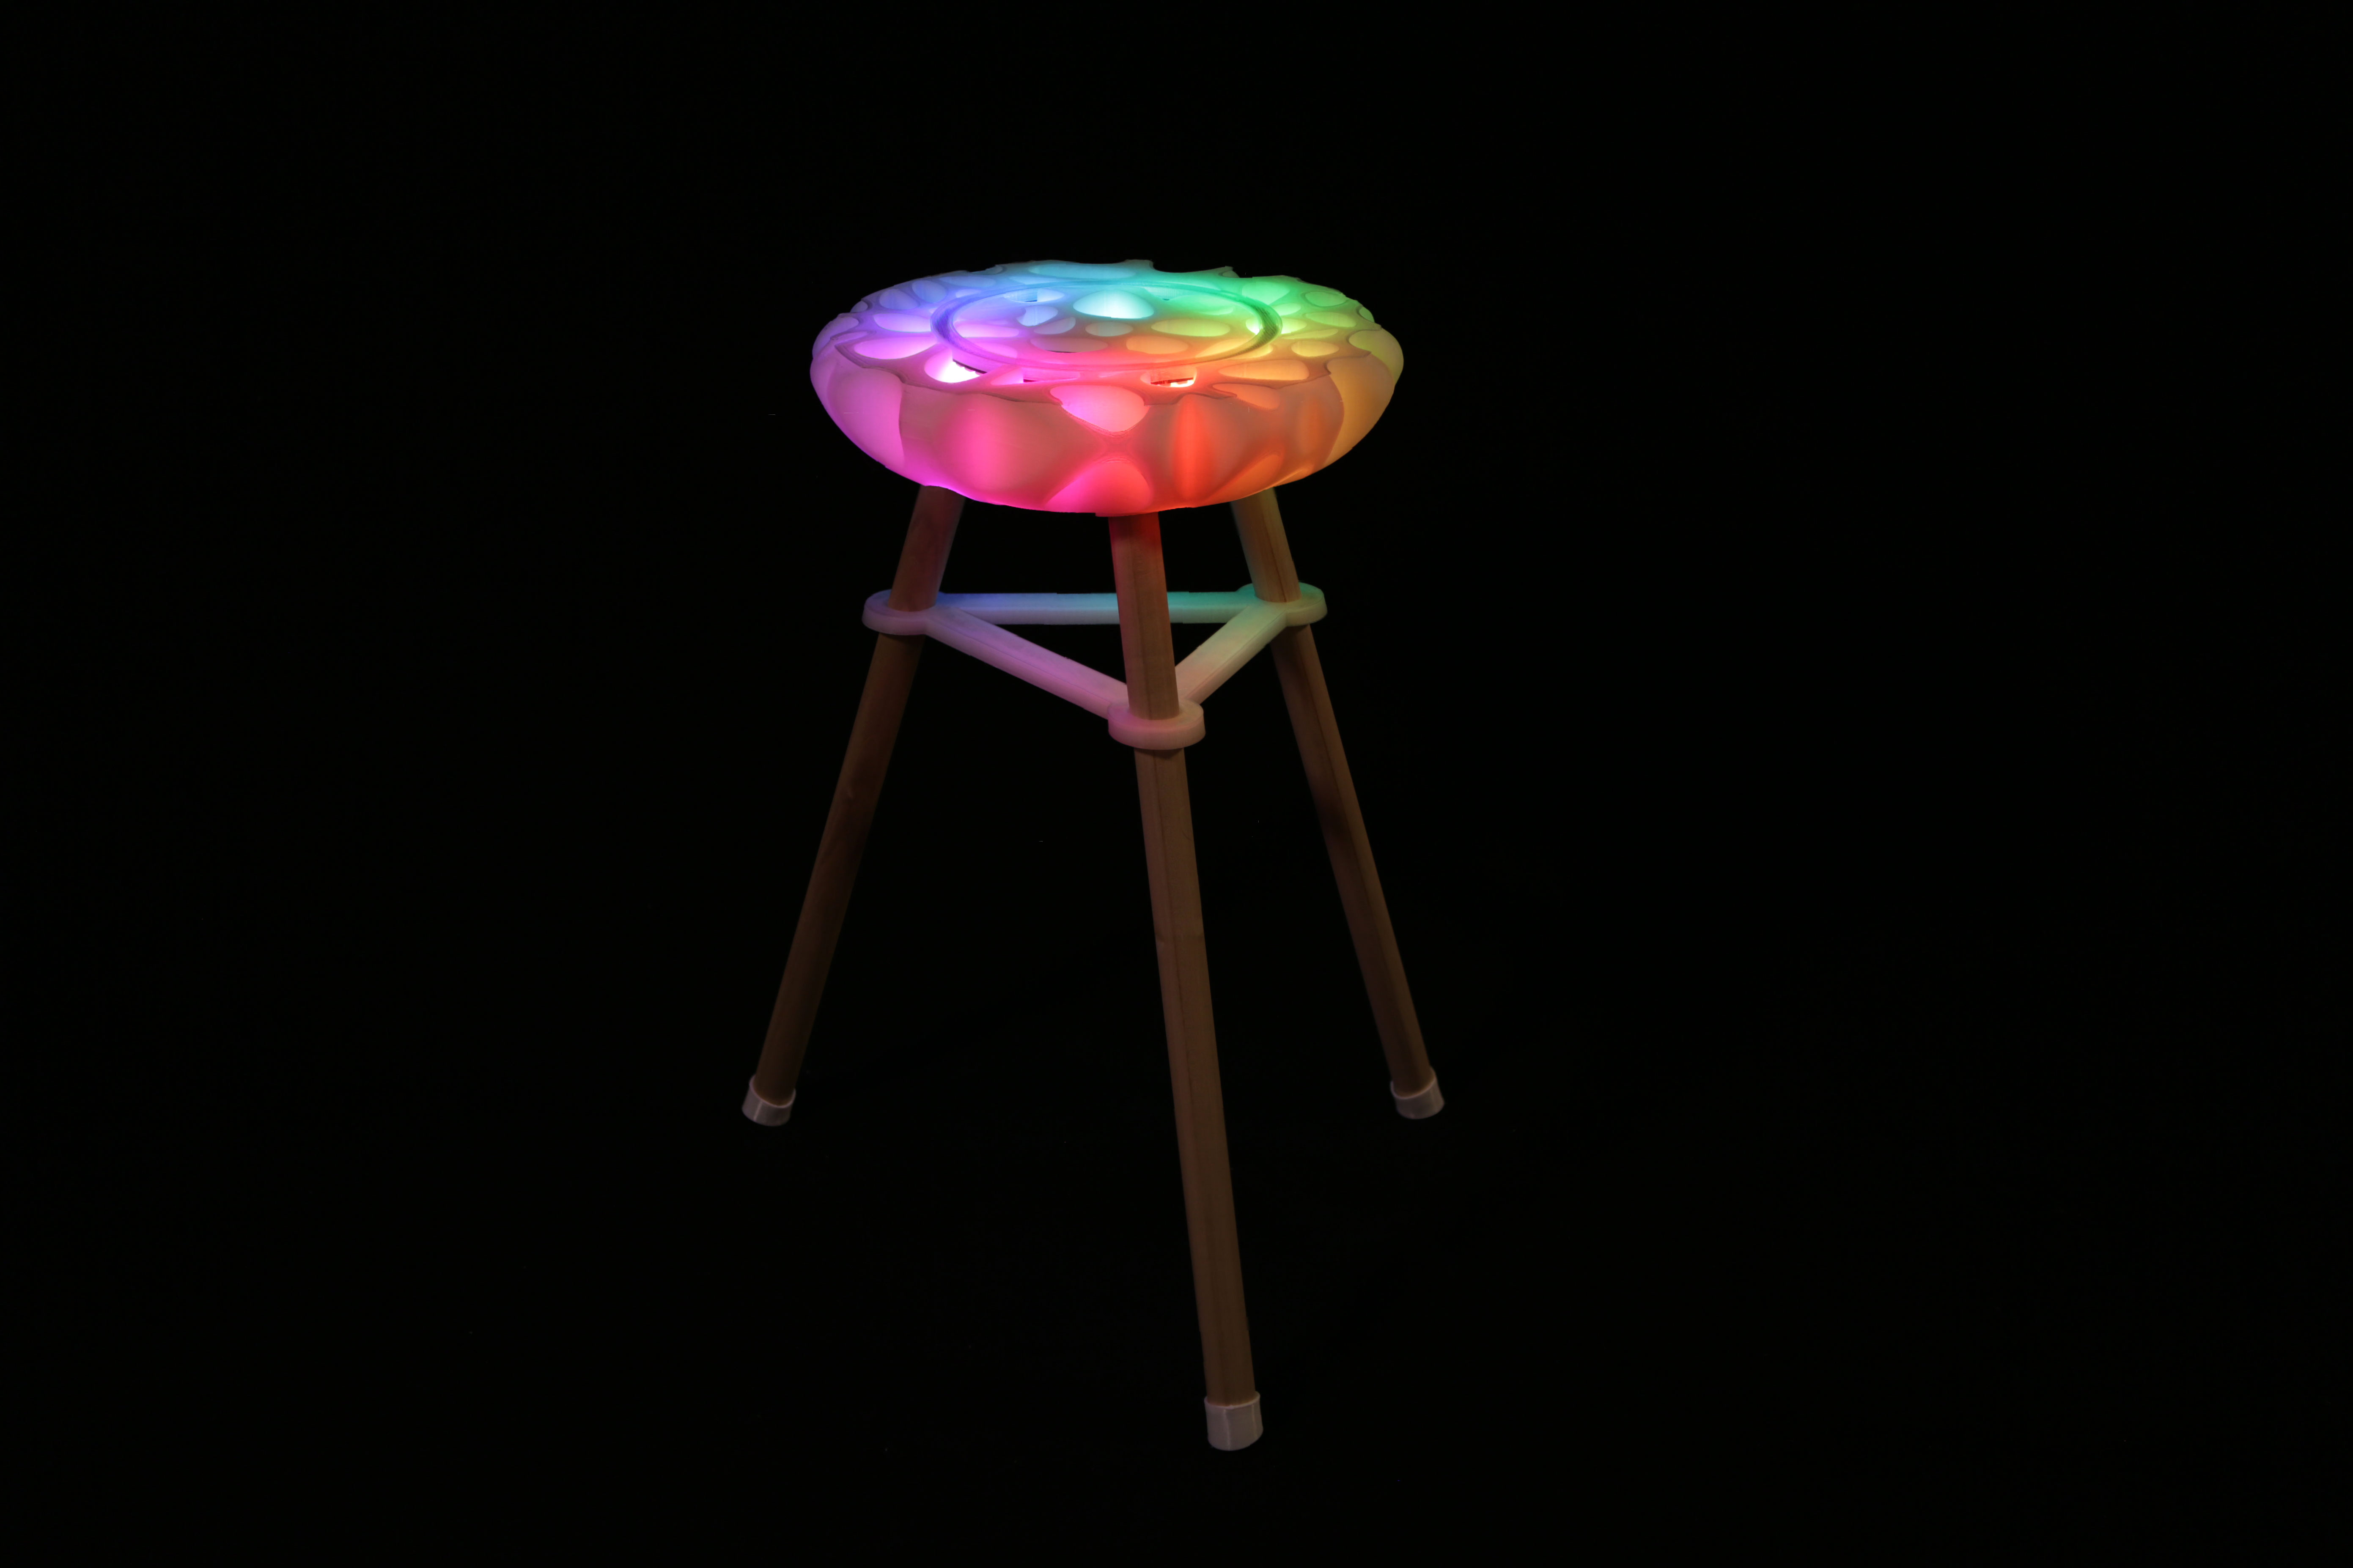 leds_hero-stool.jpg